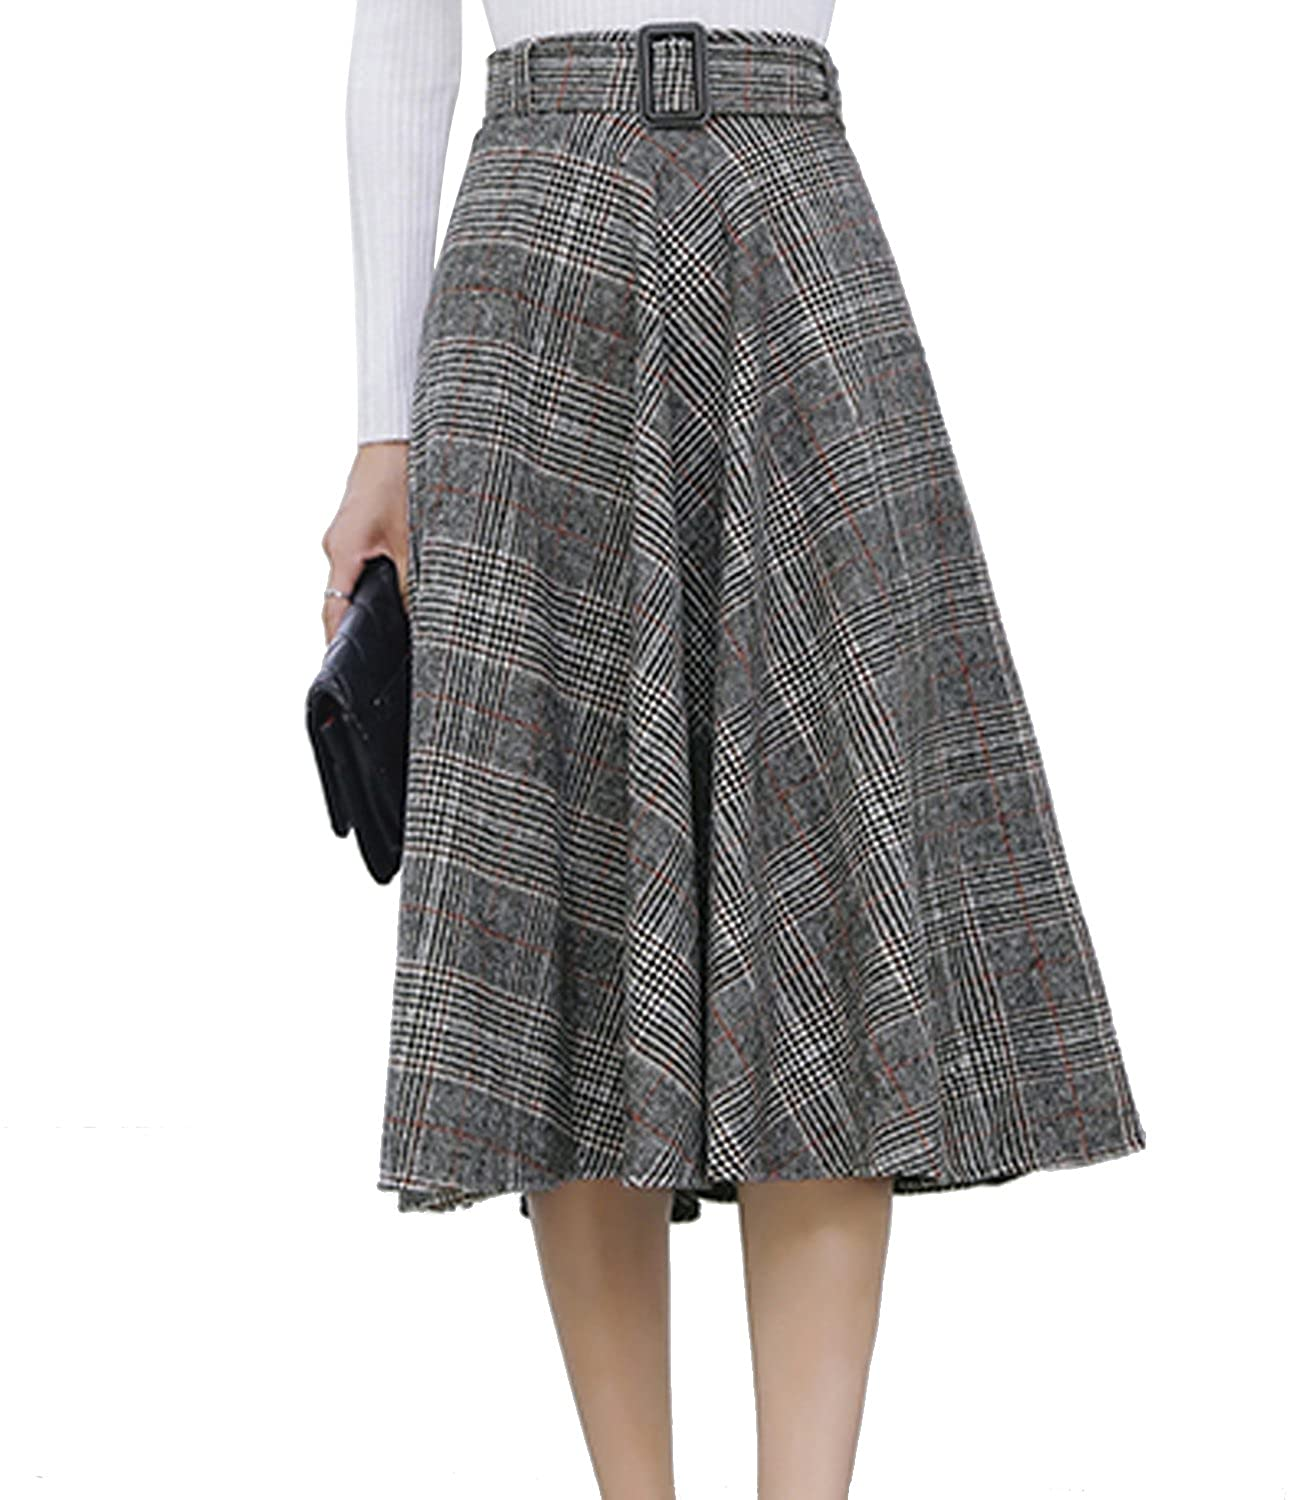 Victorian Skirts | Bustle, Walking, Edwardian Skirts Sanifer Womens Warm Woolen Plaid Gray Pleated A Line Skirt with Belt $27.99 AT vintagedancer.com